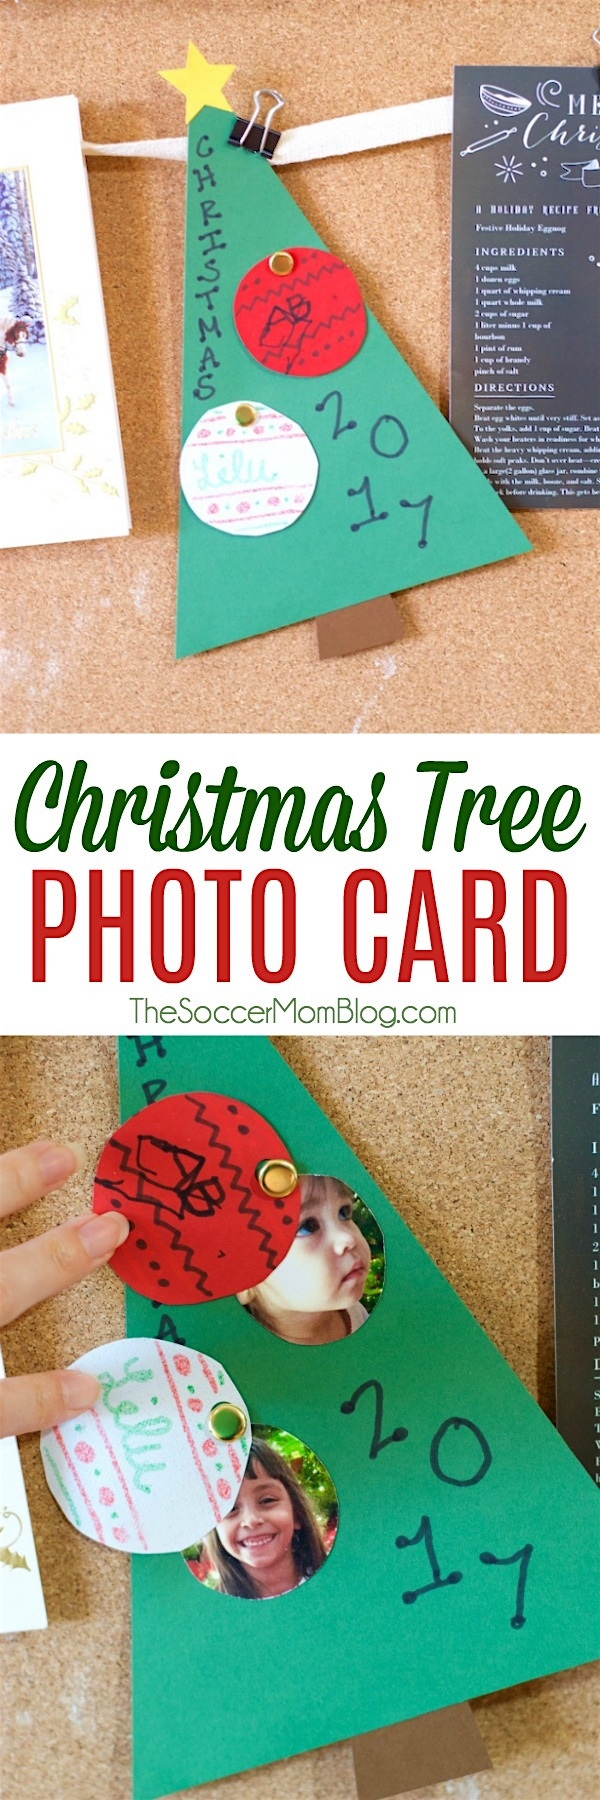 This kid-made photo Christmas tree card is a keepsake that friends and family will treasure for years to come! Easy paper craft with simple supplies.